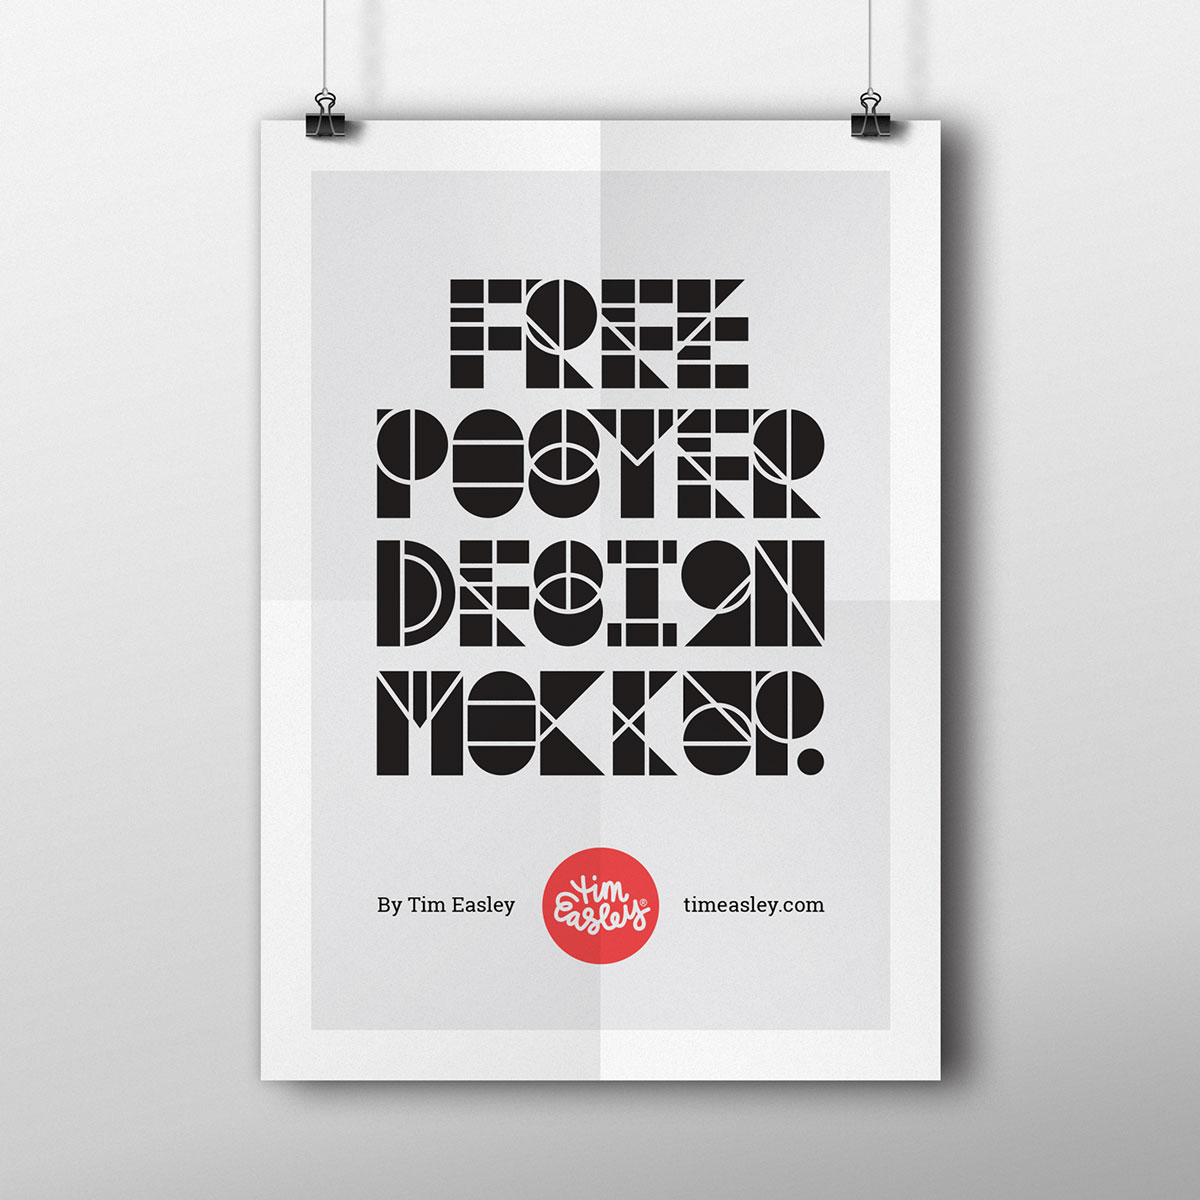 Multipurpose-Poster-Mockups-For-Your-Creative-Poster-Designs-600-6